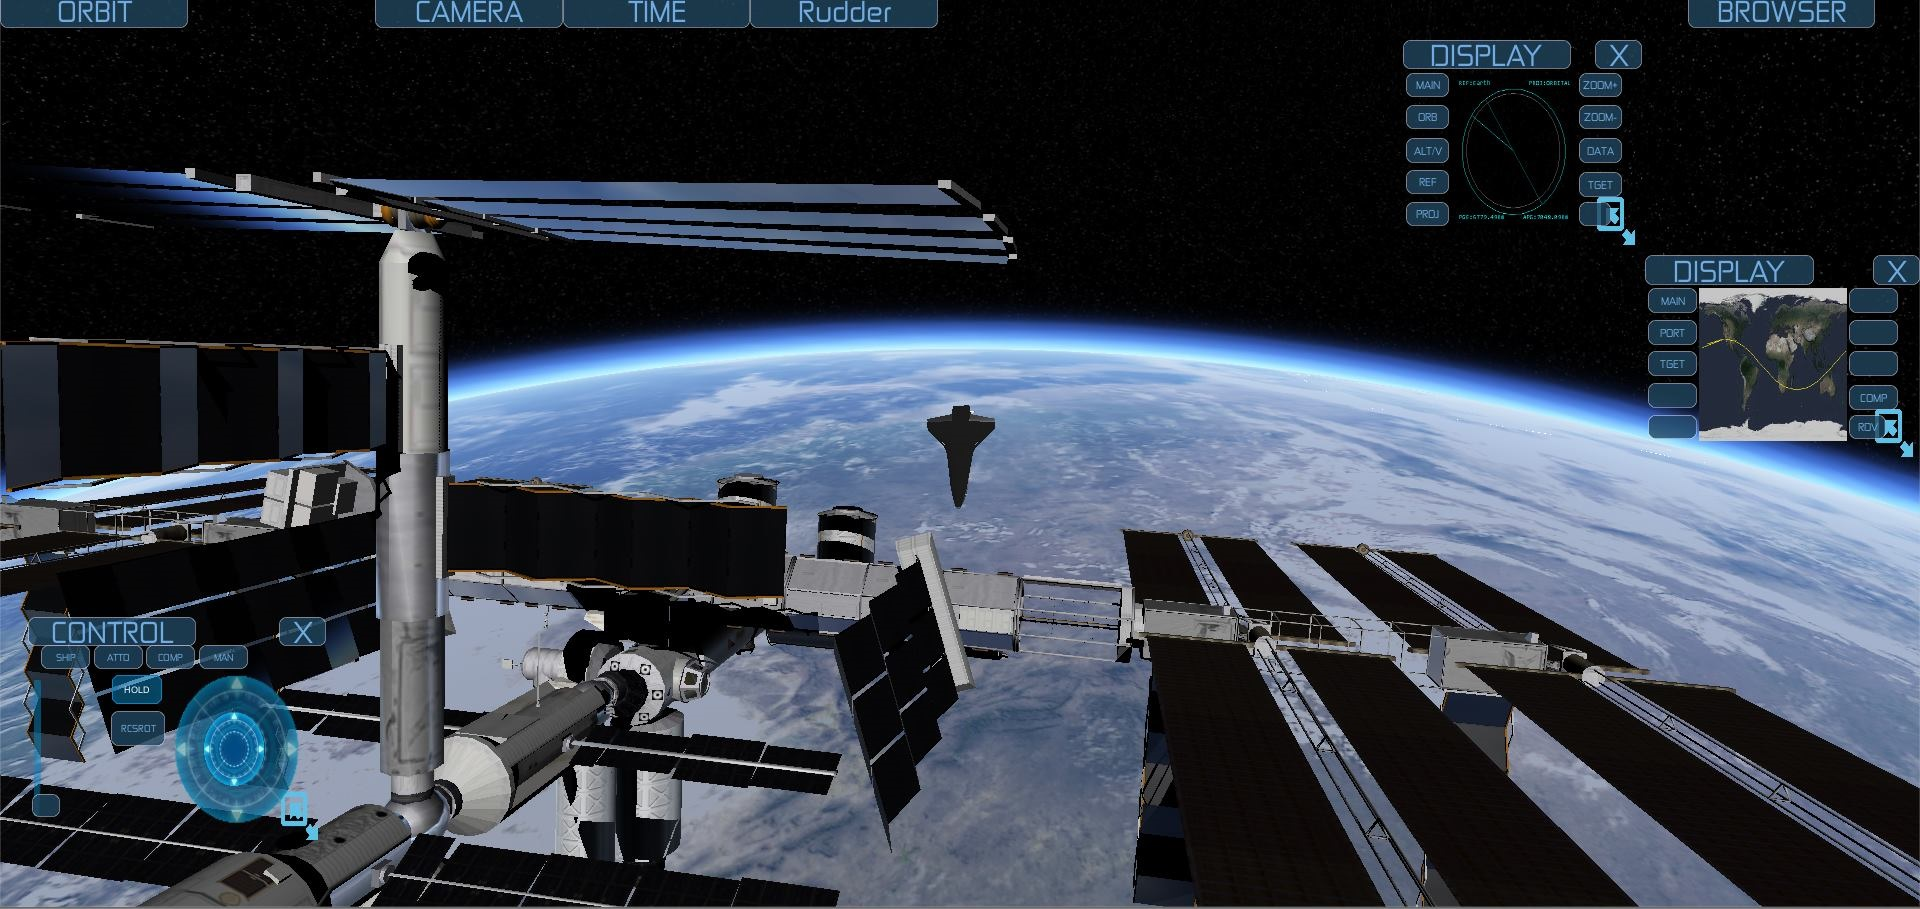 space shuttle simulator free online game - photo #16